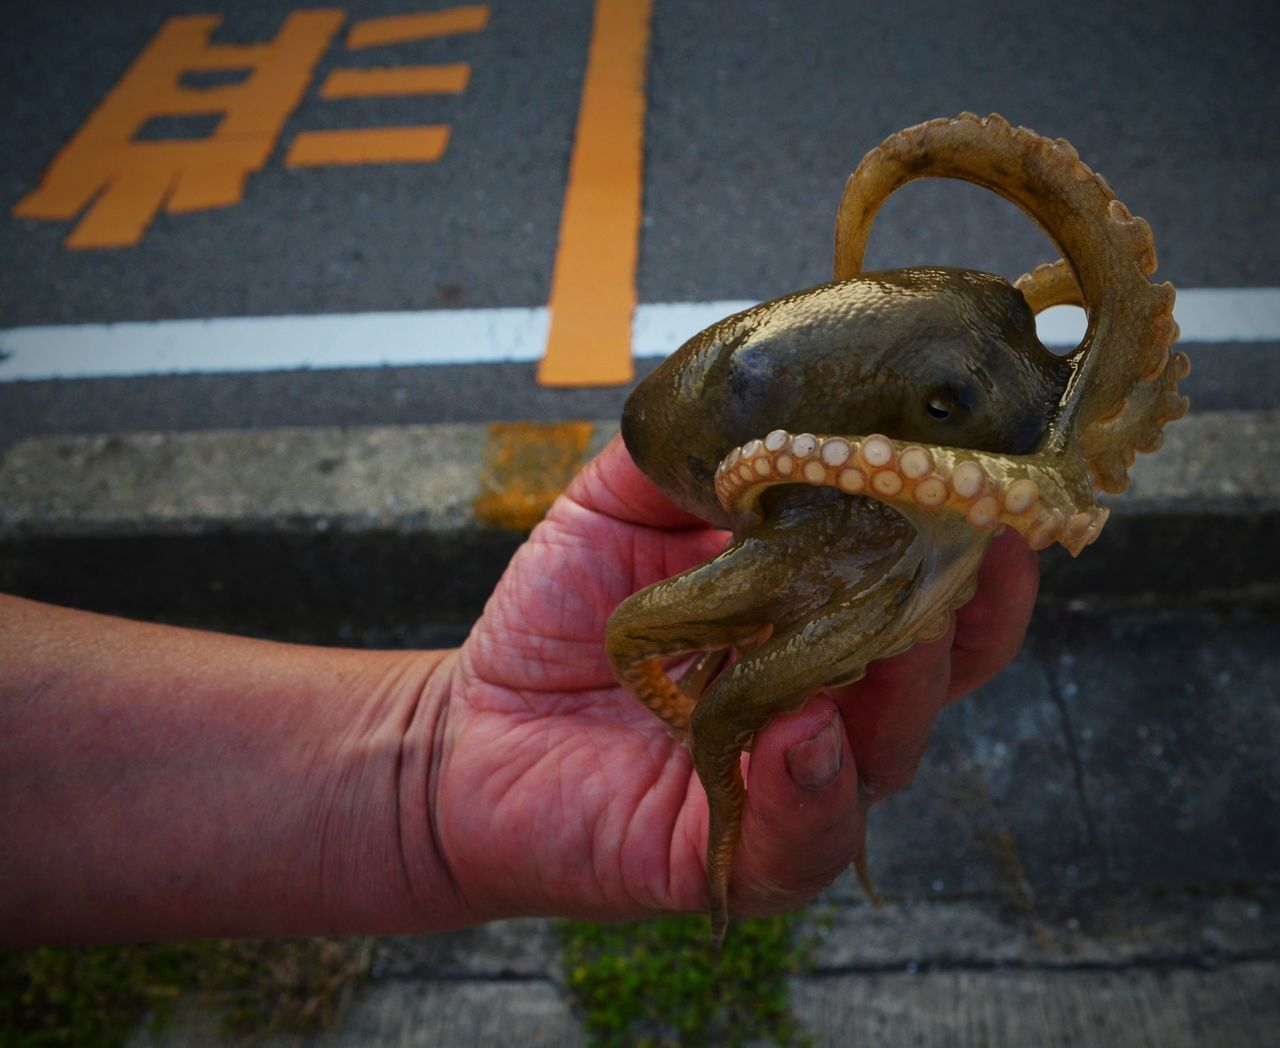 Hand Human Hand Ishizaki Japan Lunch Octopus Offering One Animal Streetscene Tako Tentacles Streetphotography Street Photography Urbanphotography Offerings Streetfood Streetfood Worldwide A Bird In The Hand